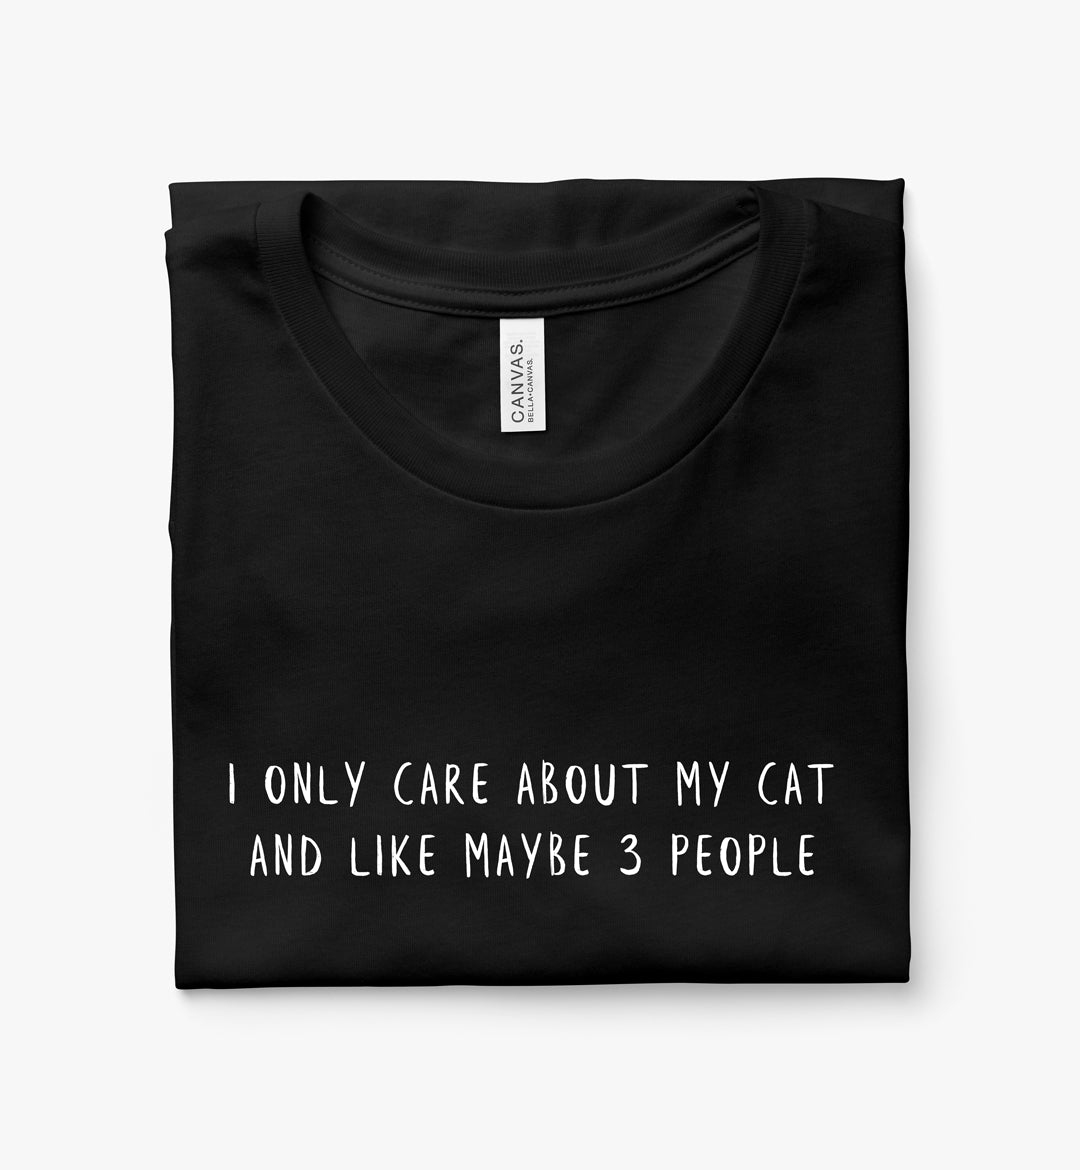 I Only Care About My Cat and Like Maybe 3 People